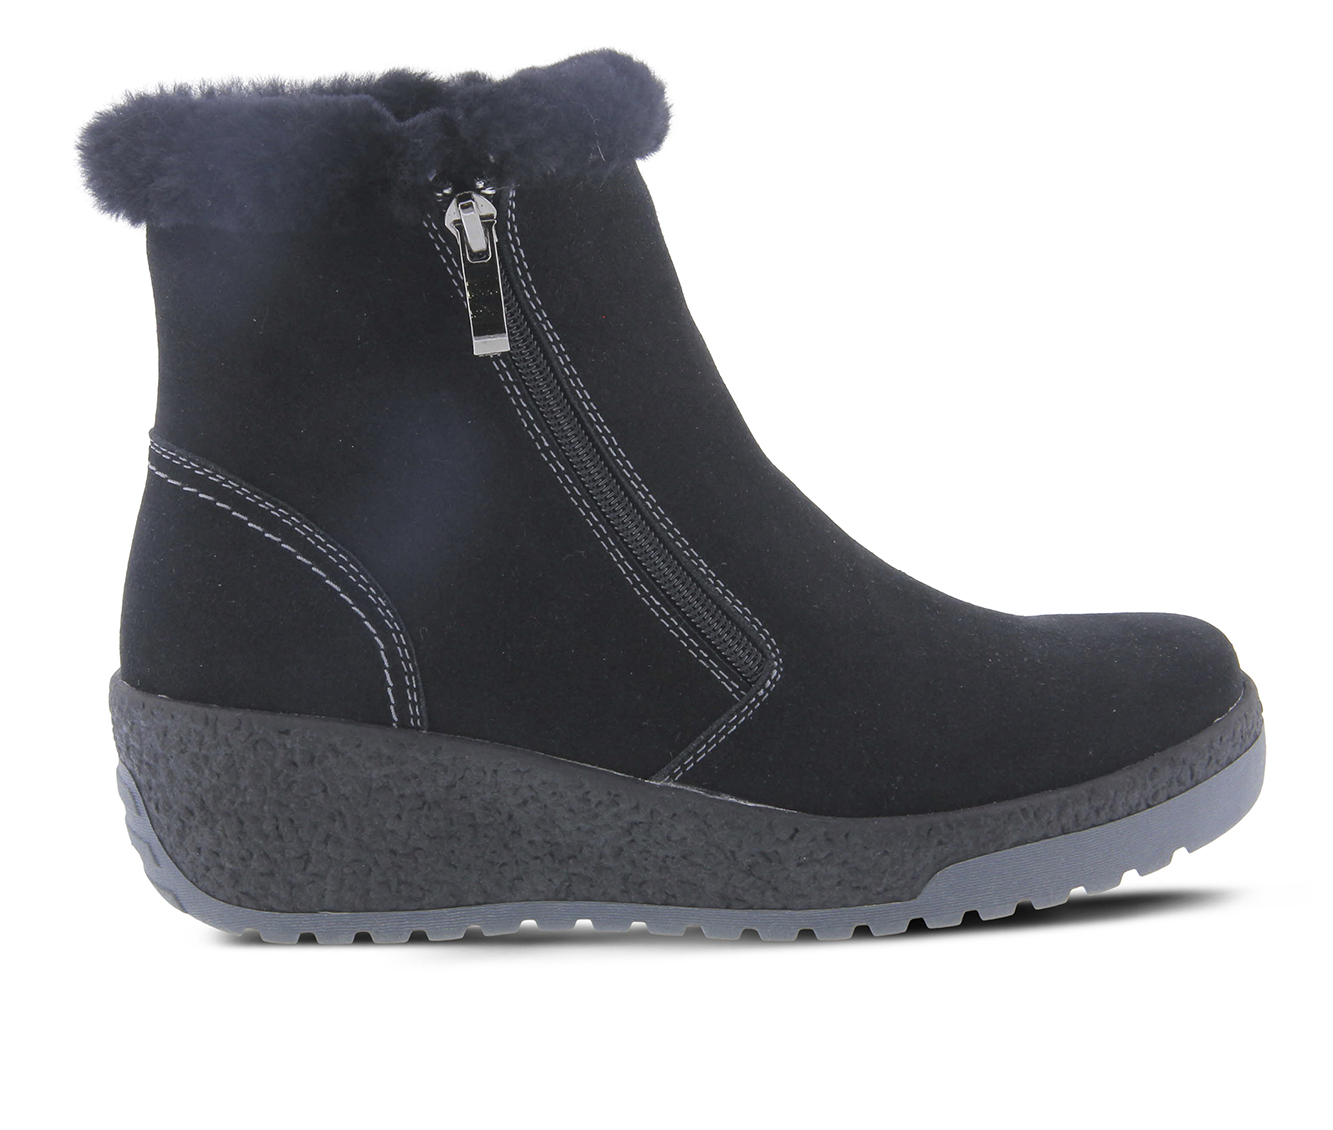 SPRING STEP Lambi Women's Boots (Black Suede)